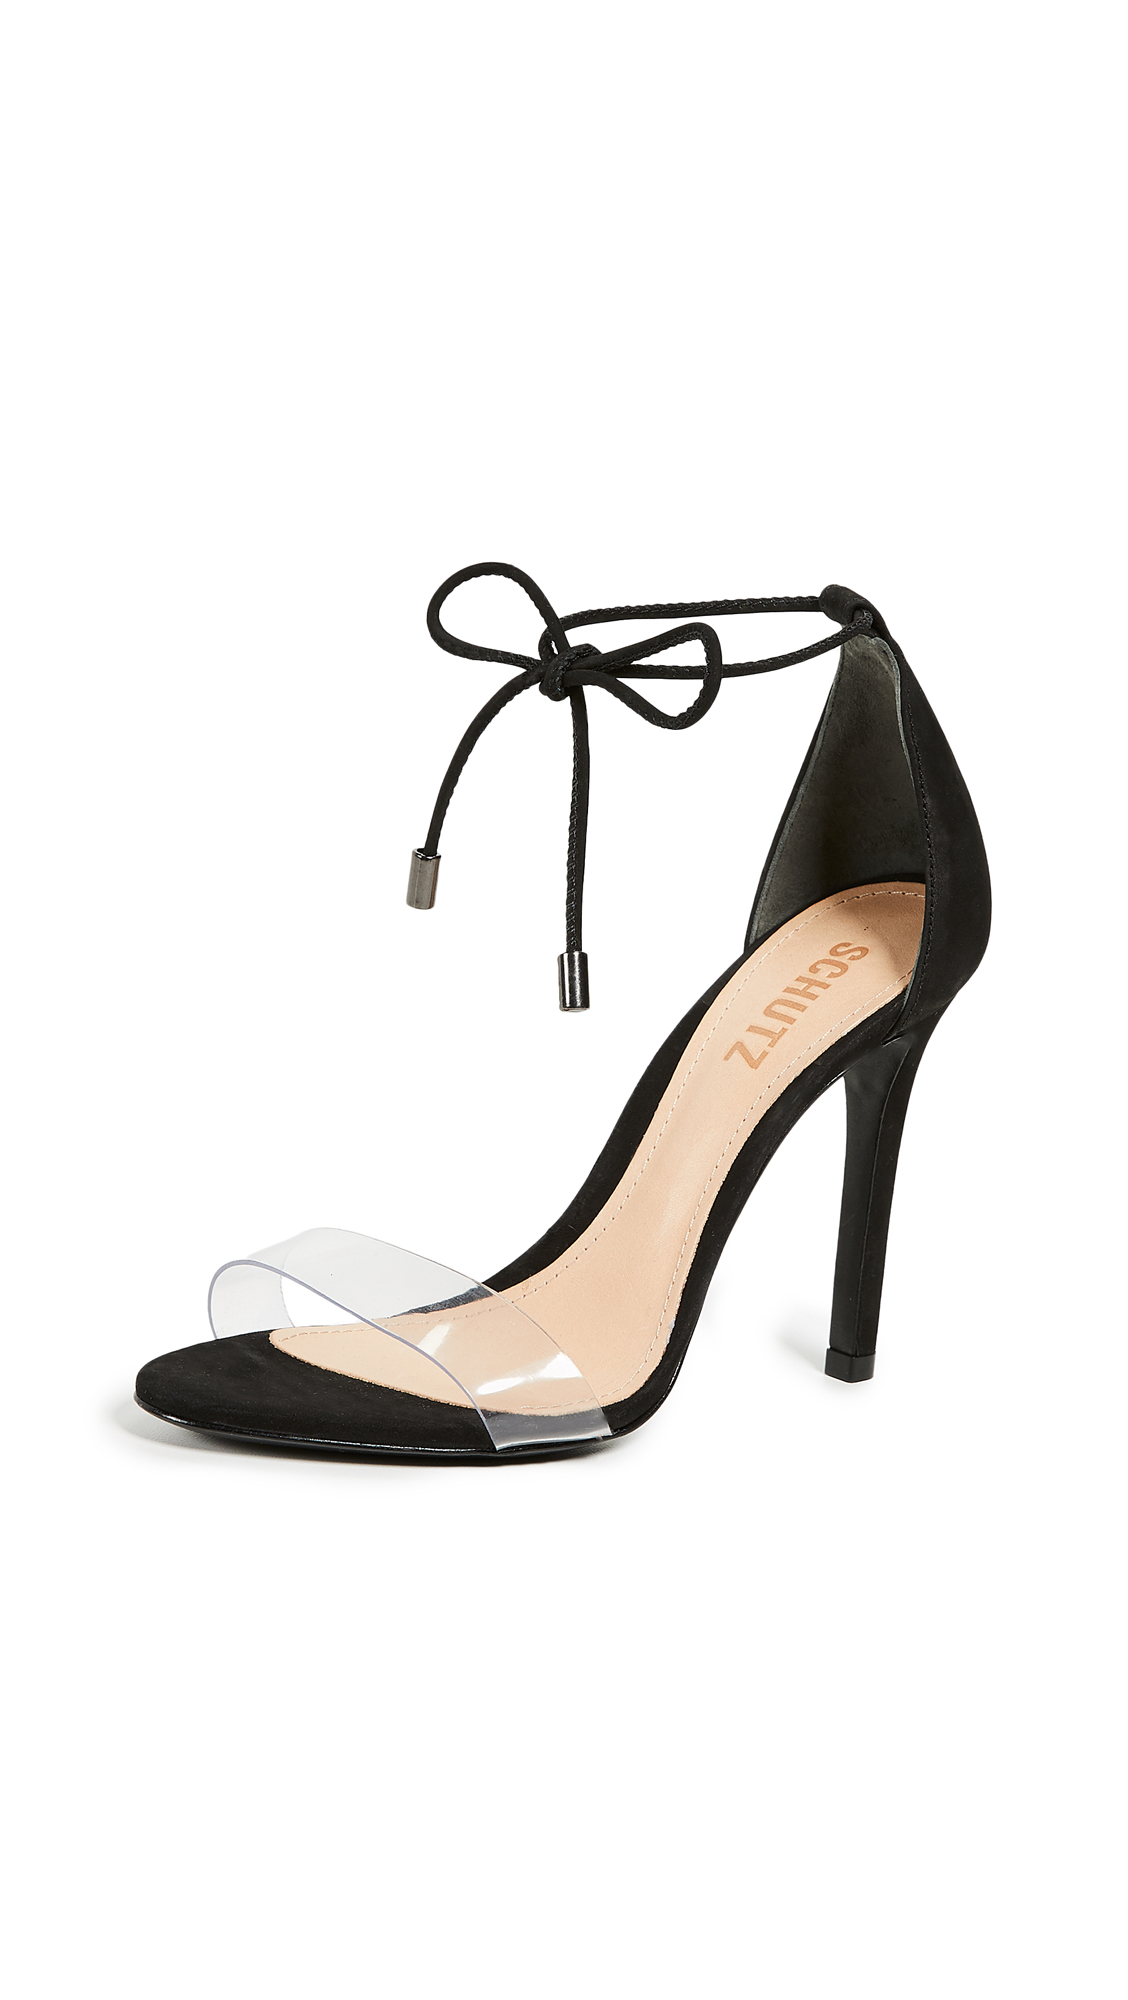 Schutz Josseana Strappy Sandals - Black/Transparent